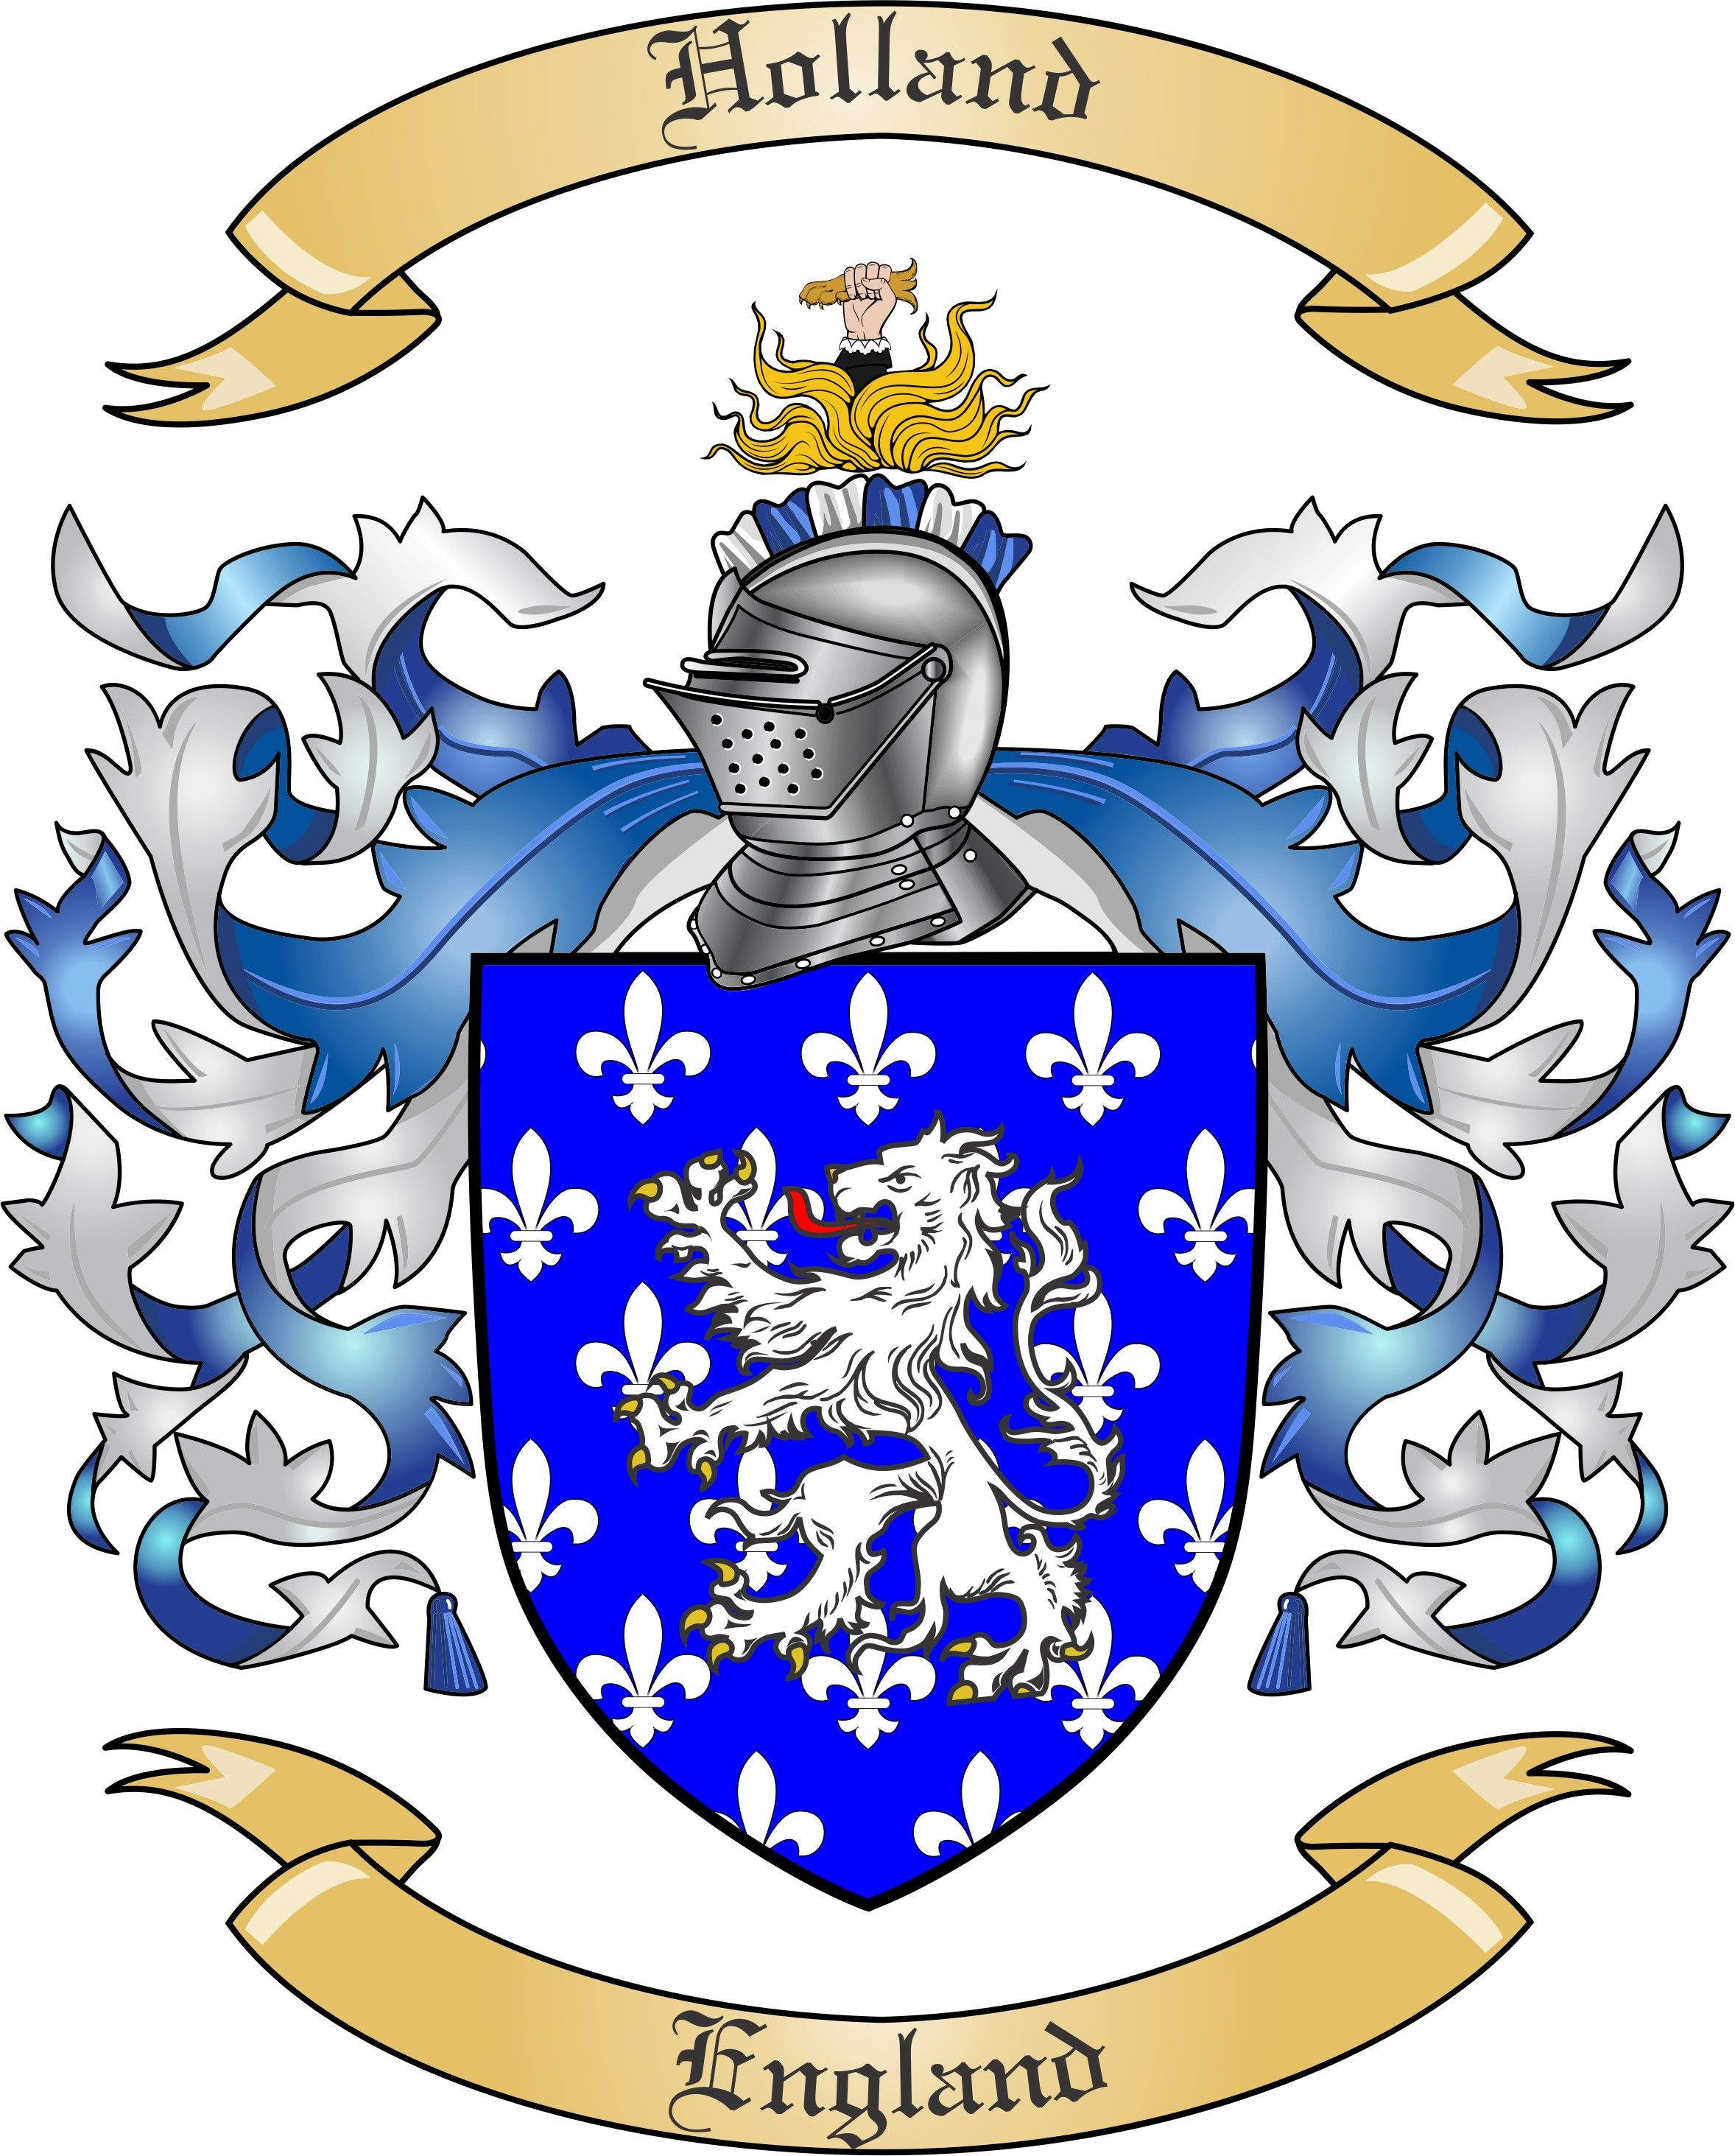 Holland family coat of arms and family crest sir thomas holland holland family coat of arms and family crest sir thomas holland 1314 1360 1st biocorpaavc